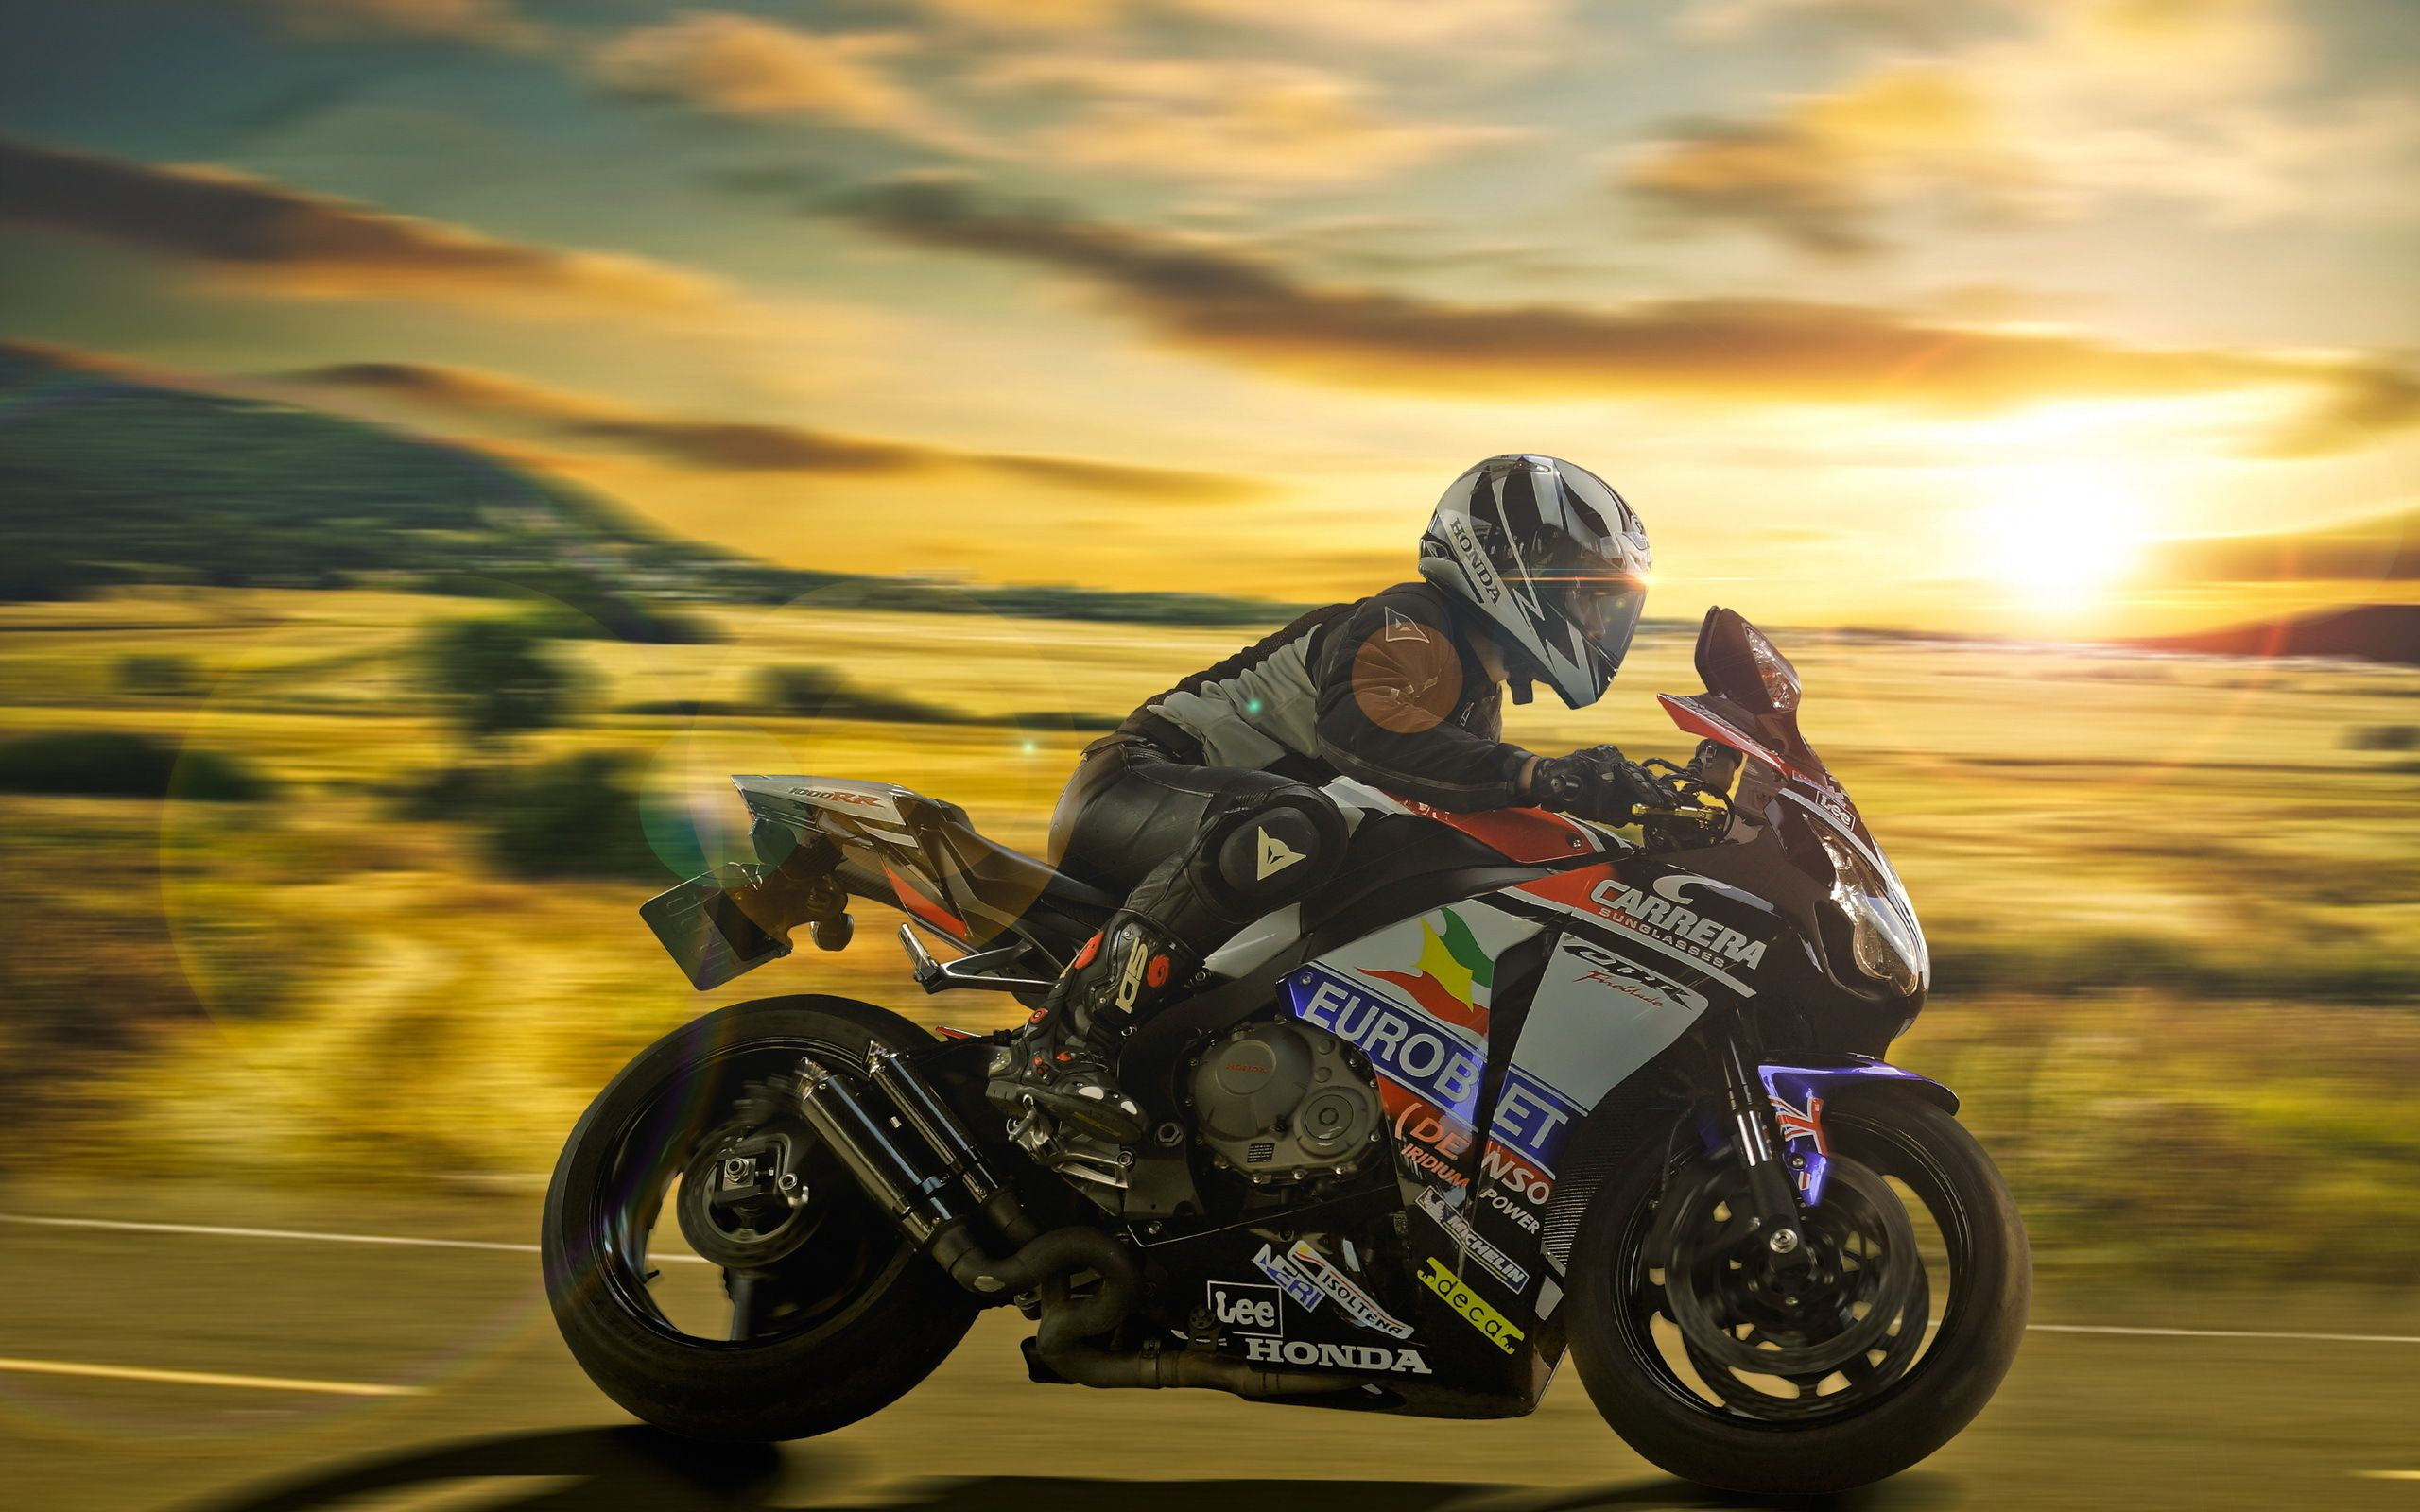 Sportbike - honda cbr600rr at speed and at sunset